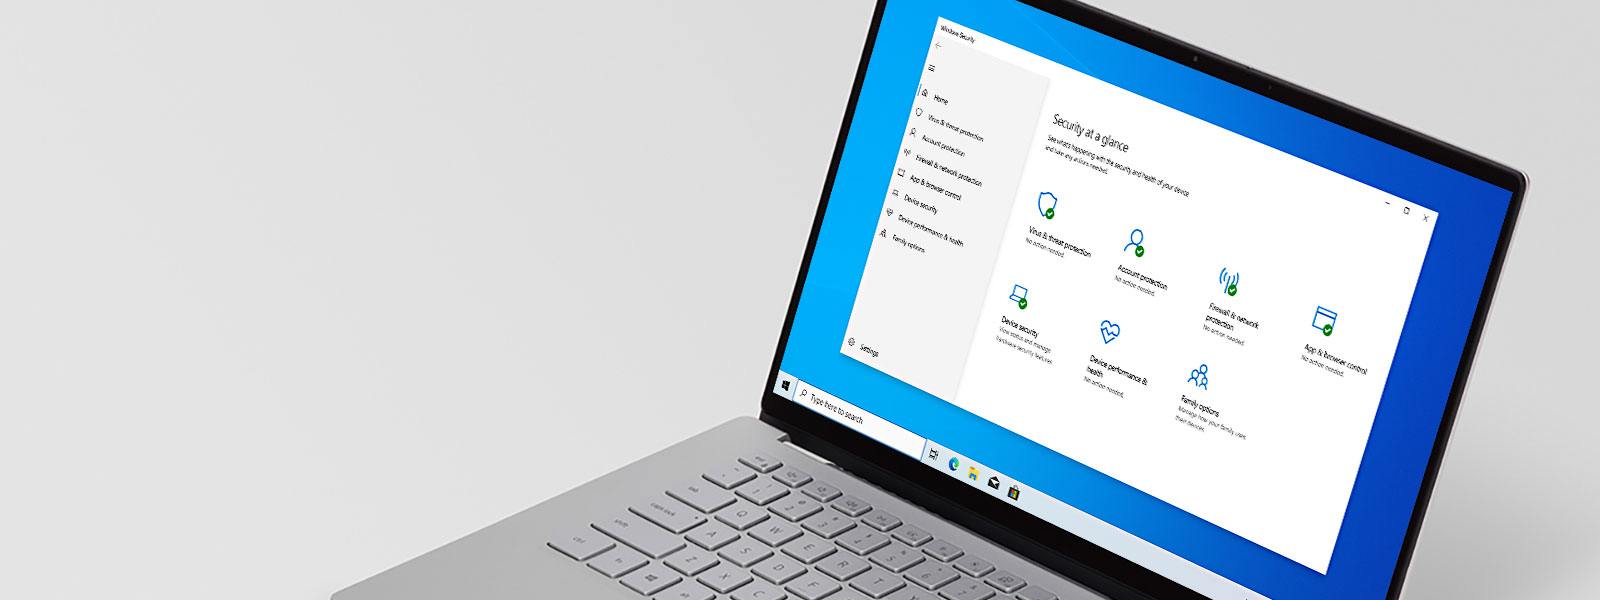 Ordinateur portable Windows 10 affichant la fenêtre Antivirus Microsoft Defender